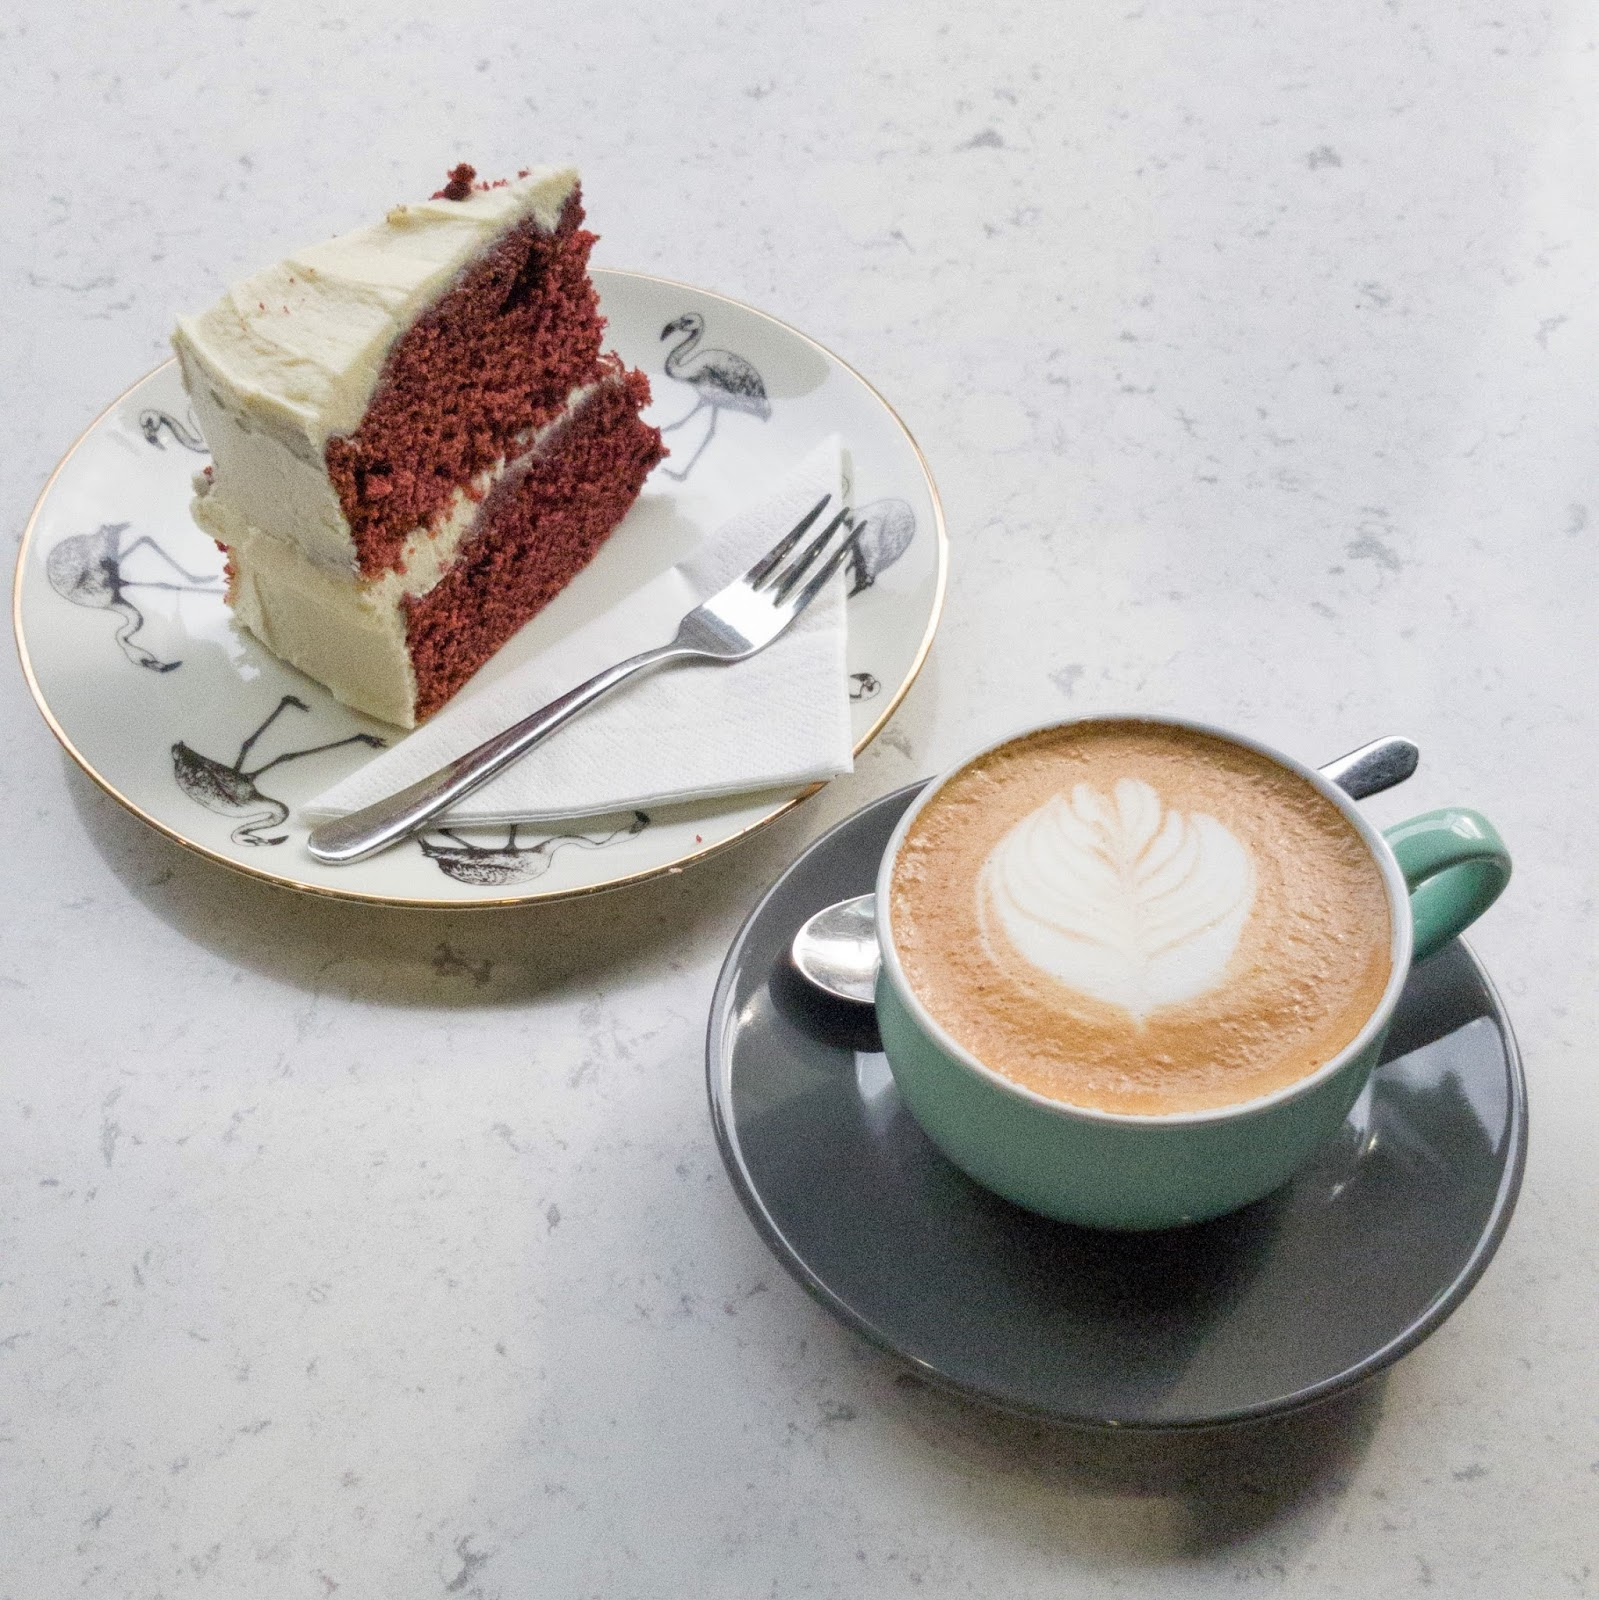 Top 5 coffee shops in Edinburgh for #UKCoffeeWeek The Pastry Section, Cairngorm Coffee, Castello and co, Brew Lab